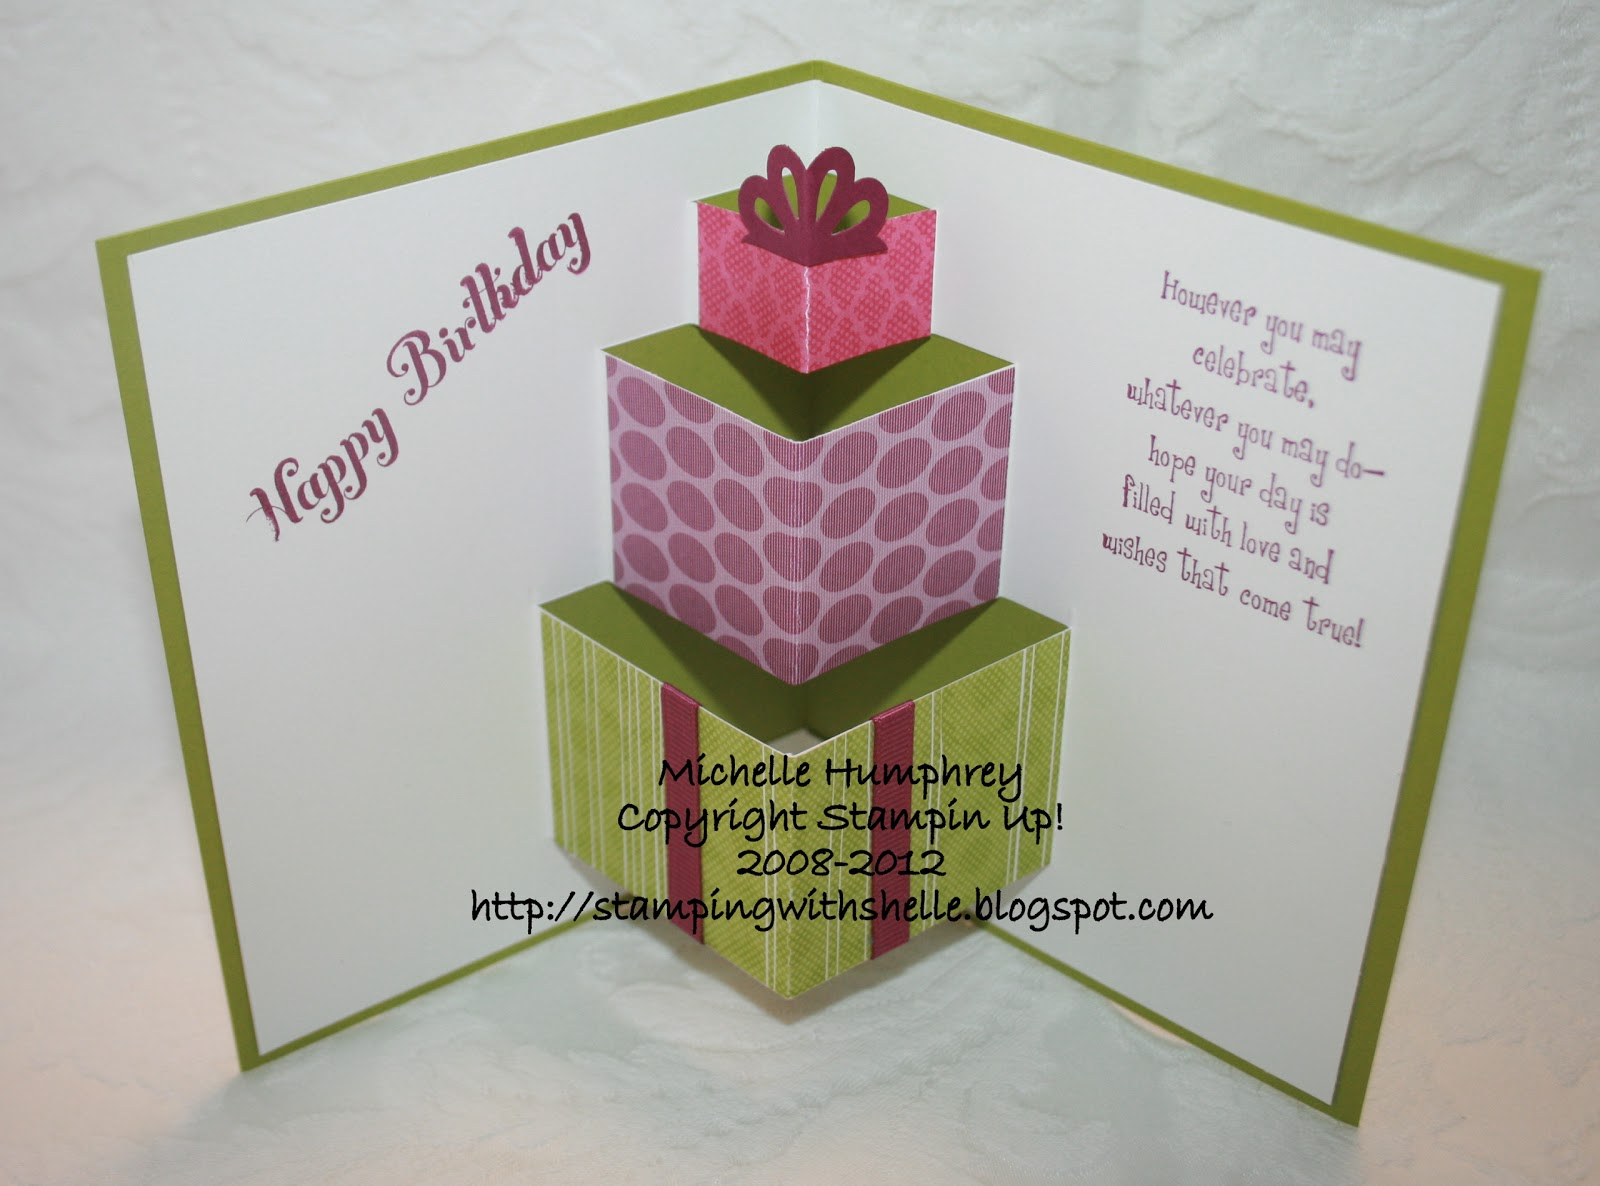 Stamping with Shelle Pop Up Birthday Card – Pop Up Cards for Birthday